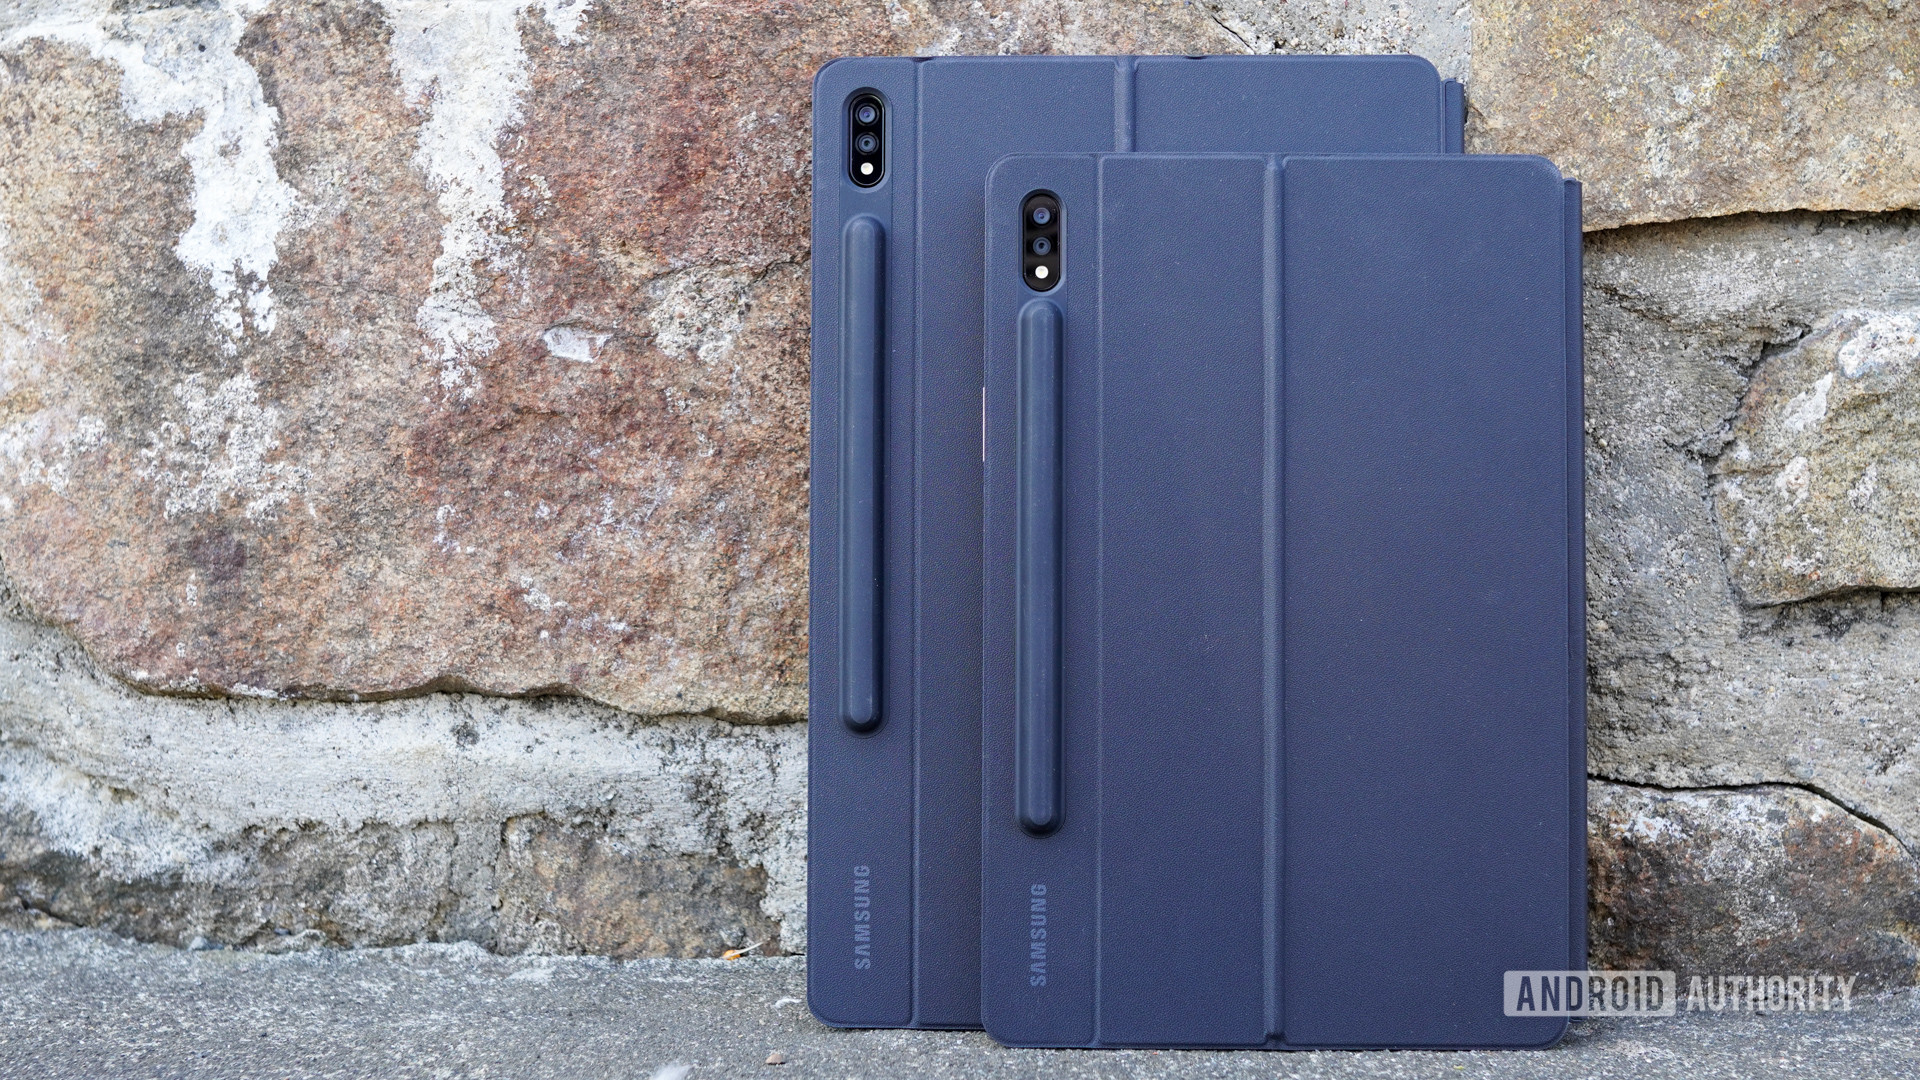 Samsung Galaxy Tab S7 together standing